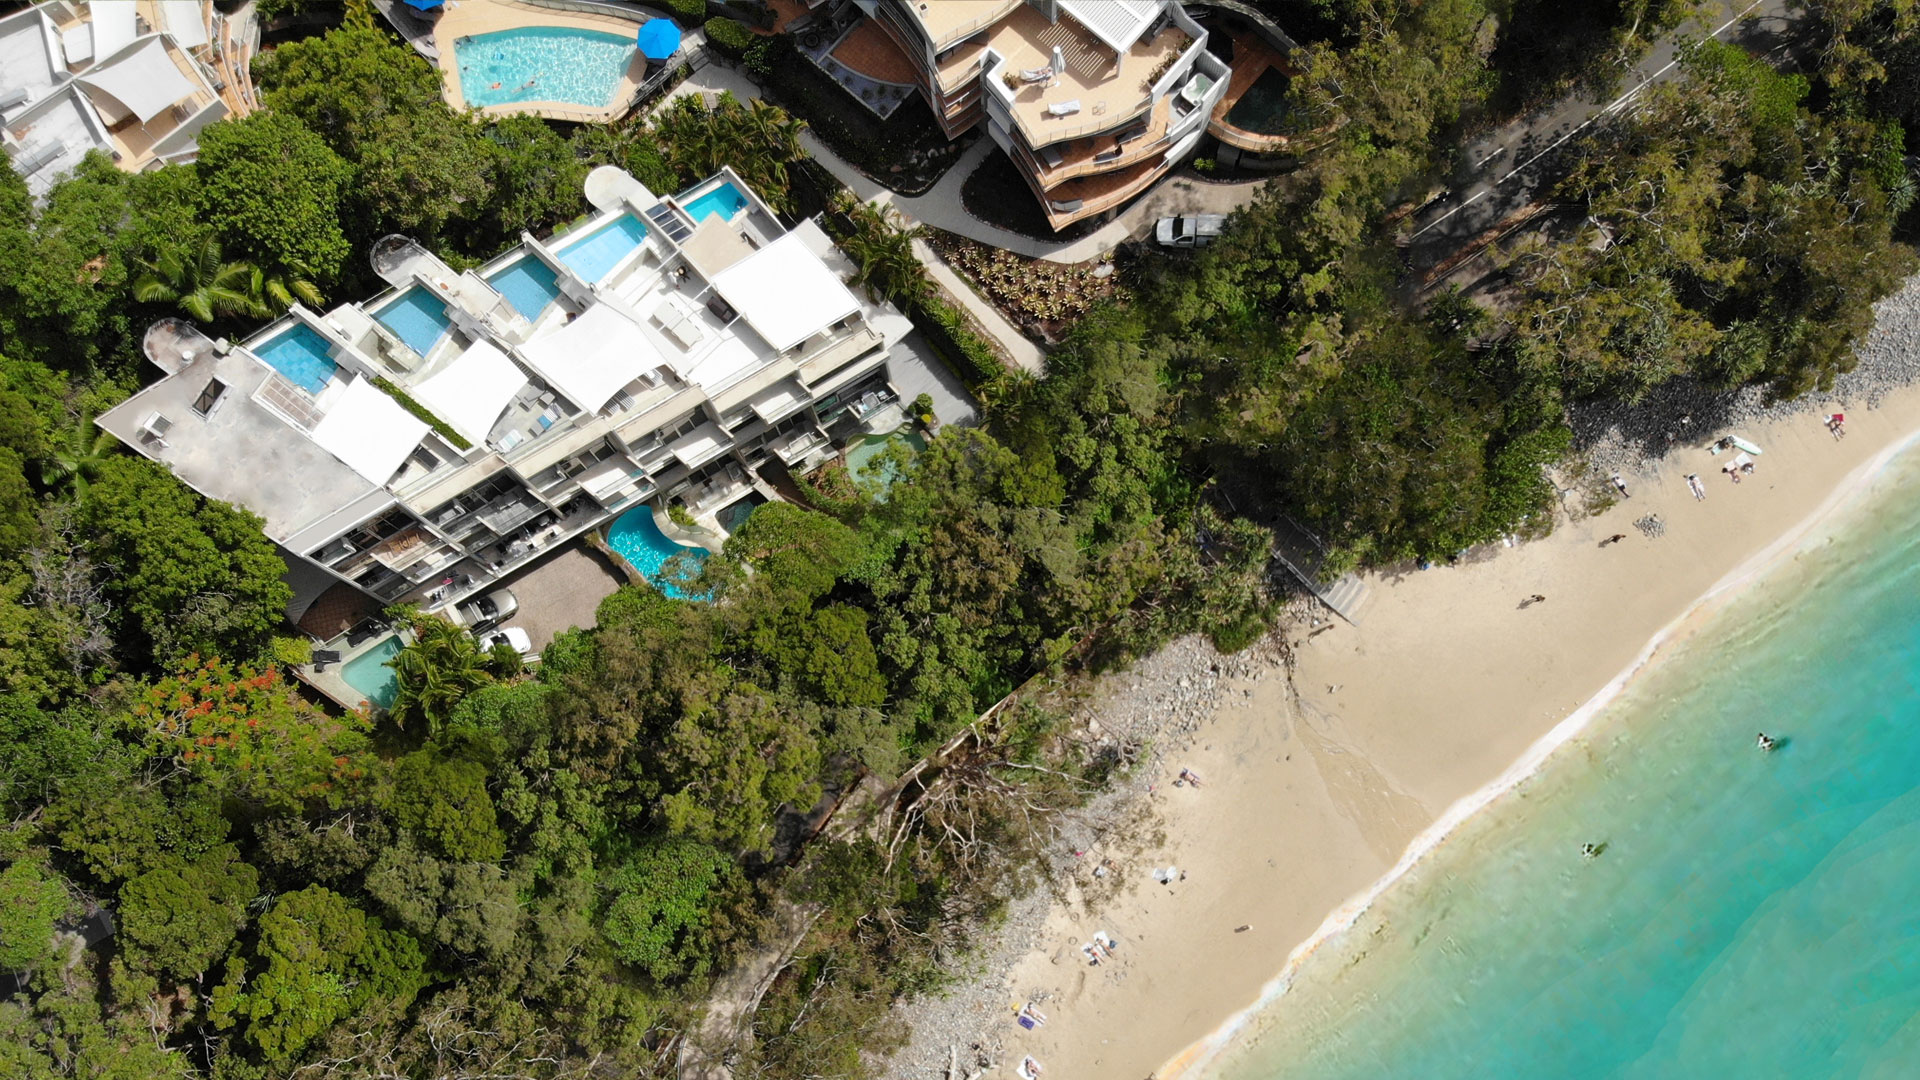 Little Cove Beach and Little Cove Apartments